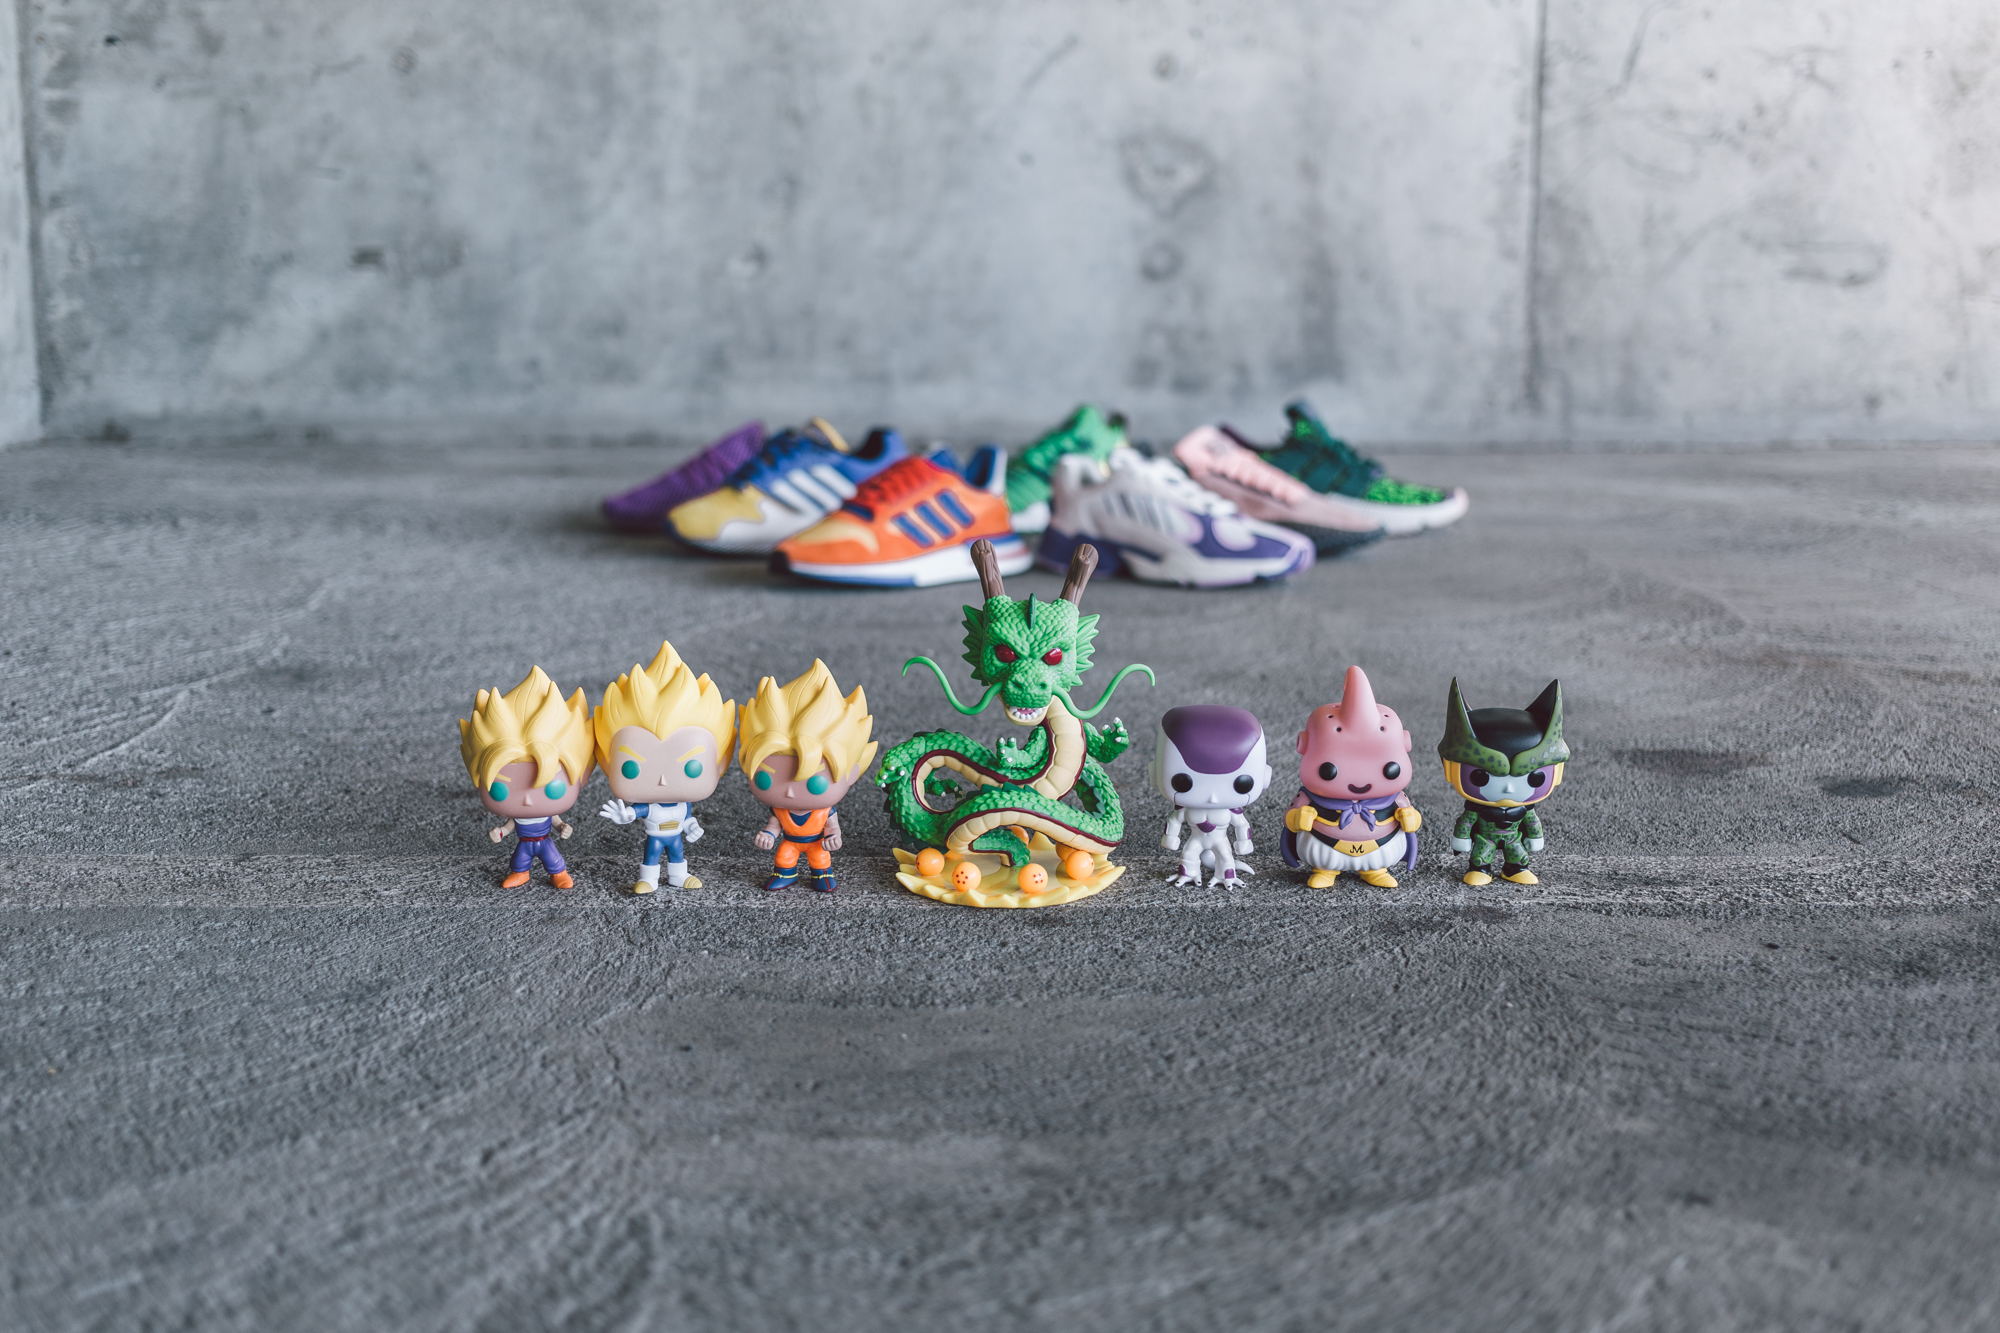 dragon ball z adidas sneakers toys